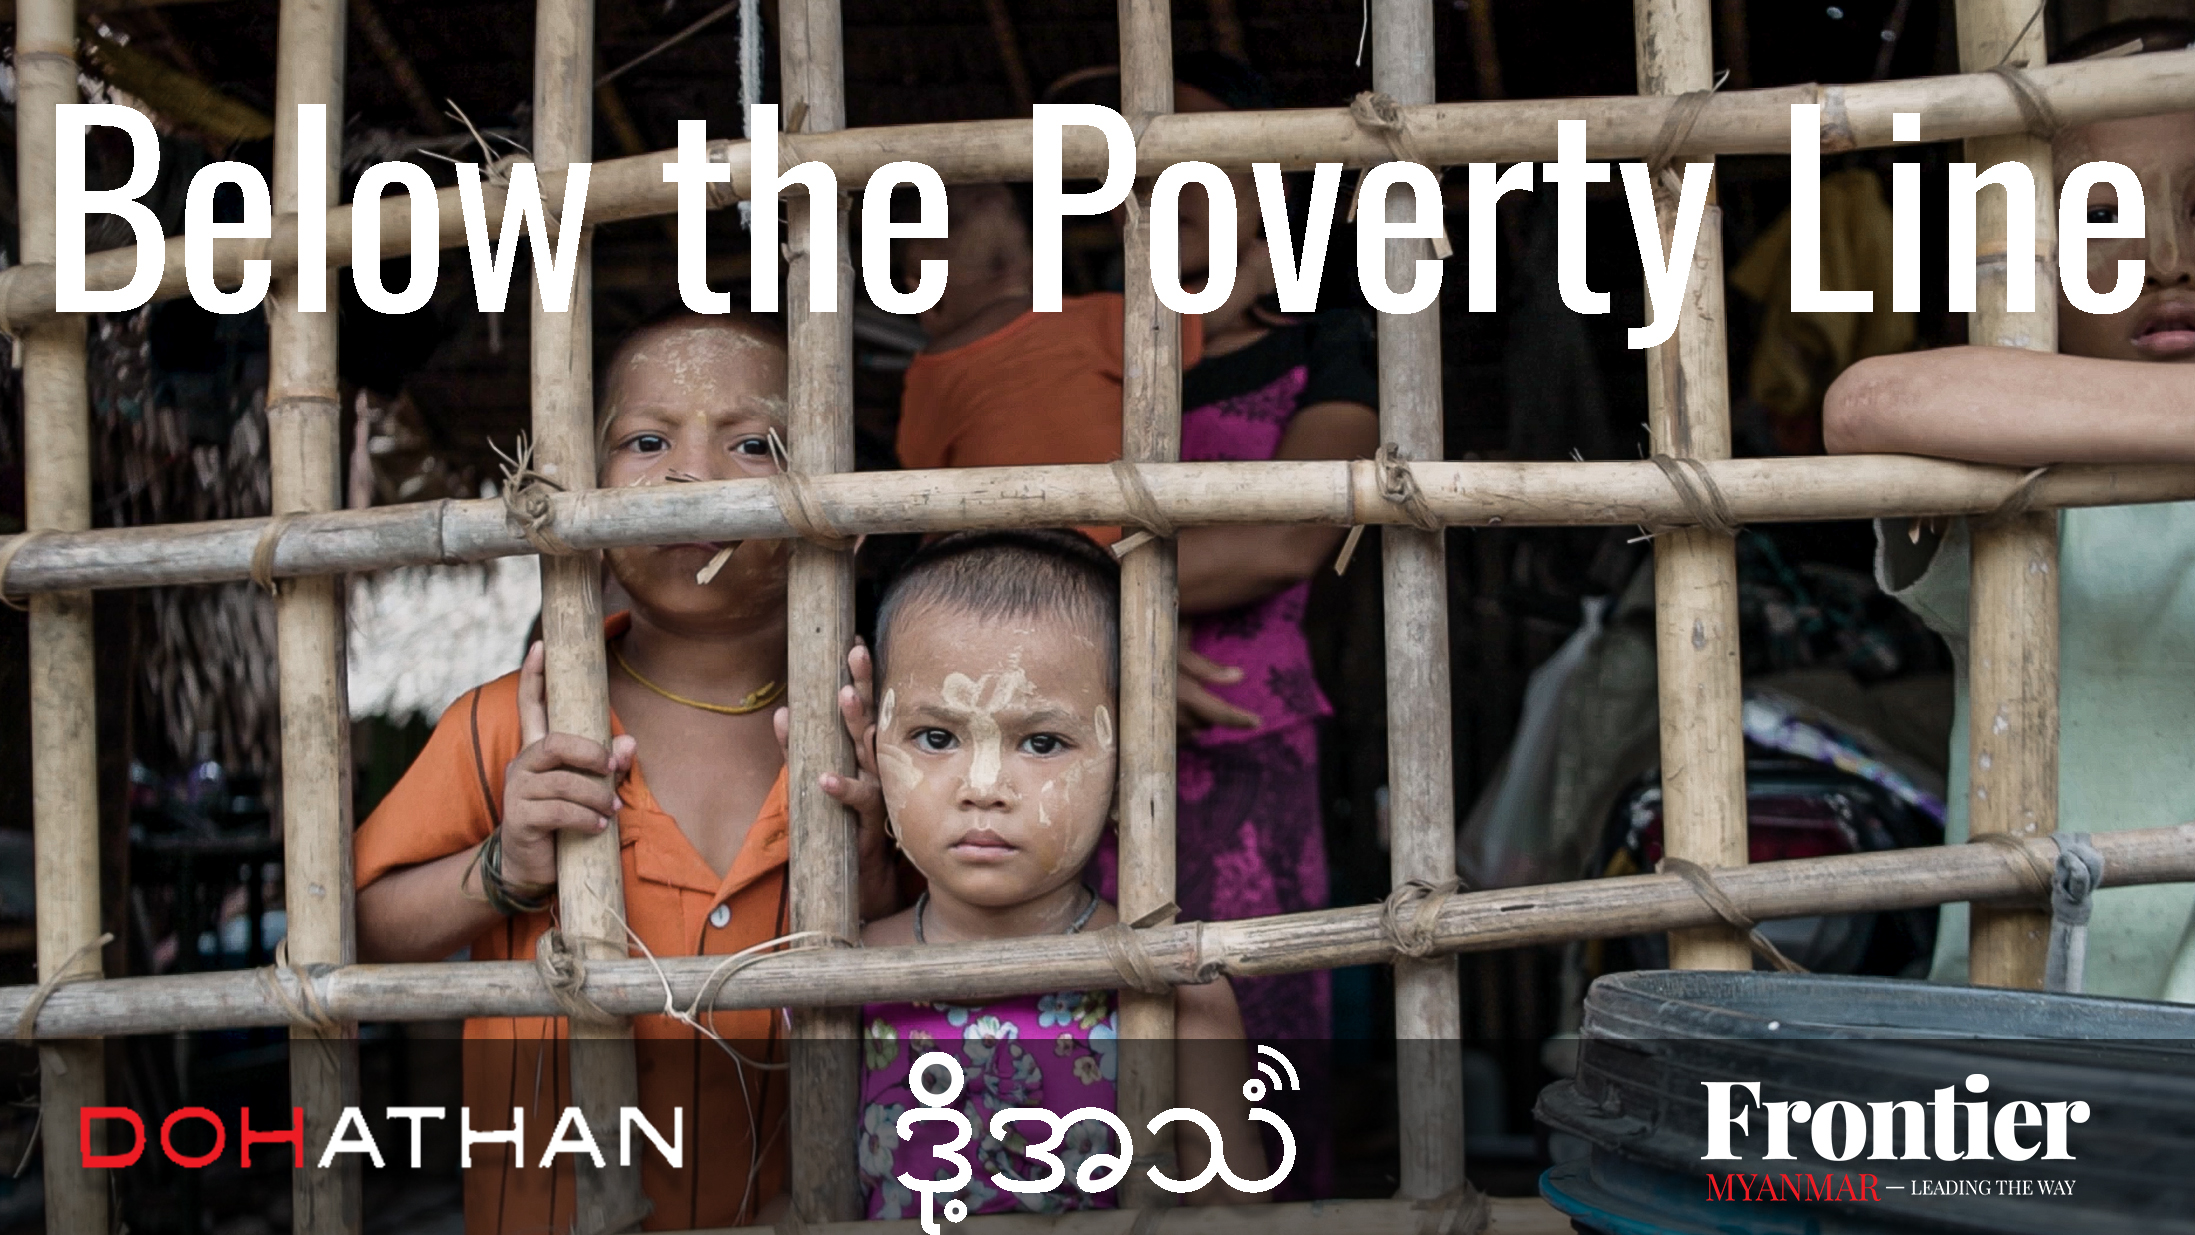 Below the poverty Line thumbnail